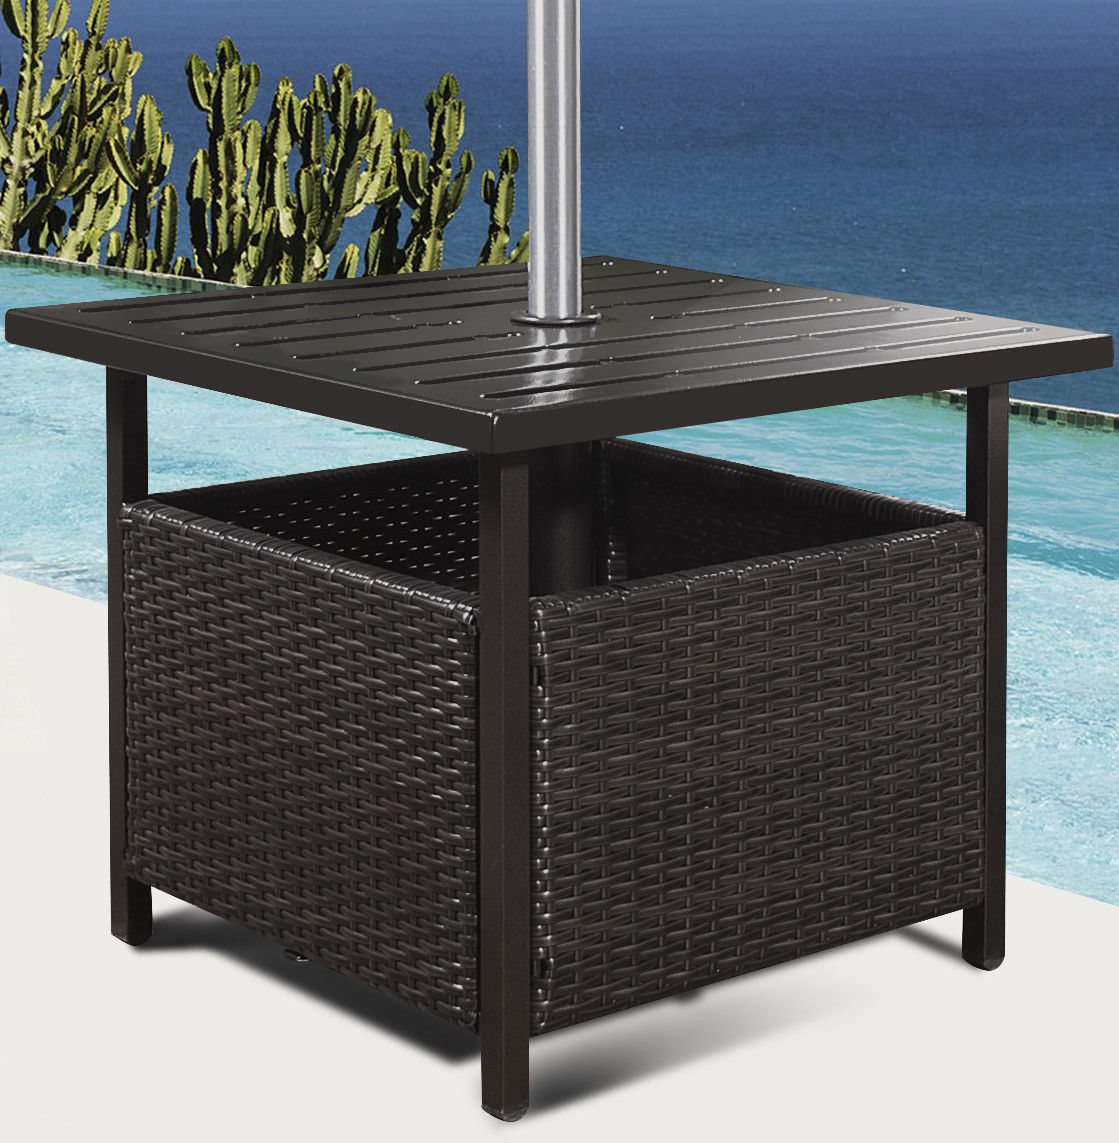 way brown rattan wicker steel side table outdoor furniture deck garden patio pool waterford lamps sets wedding covers bar height legs wood gossip bench phone dorm room folding